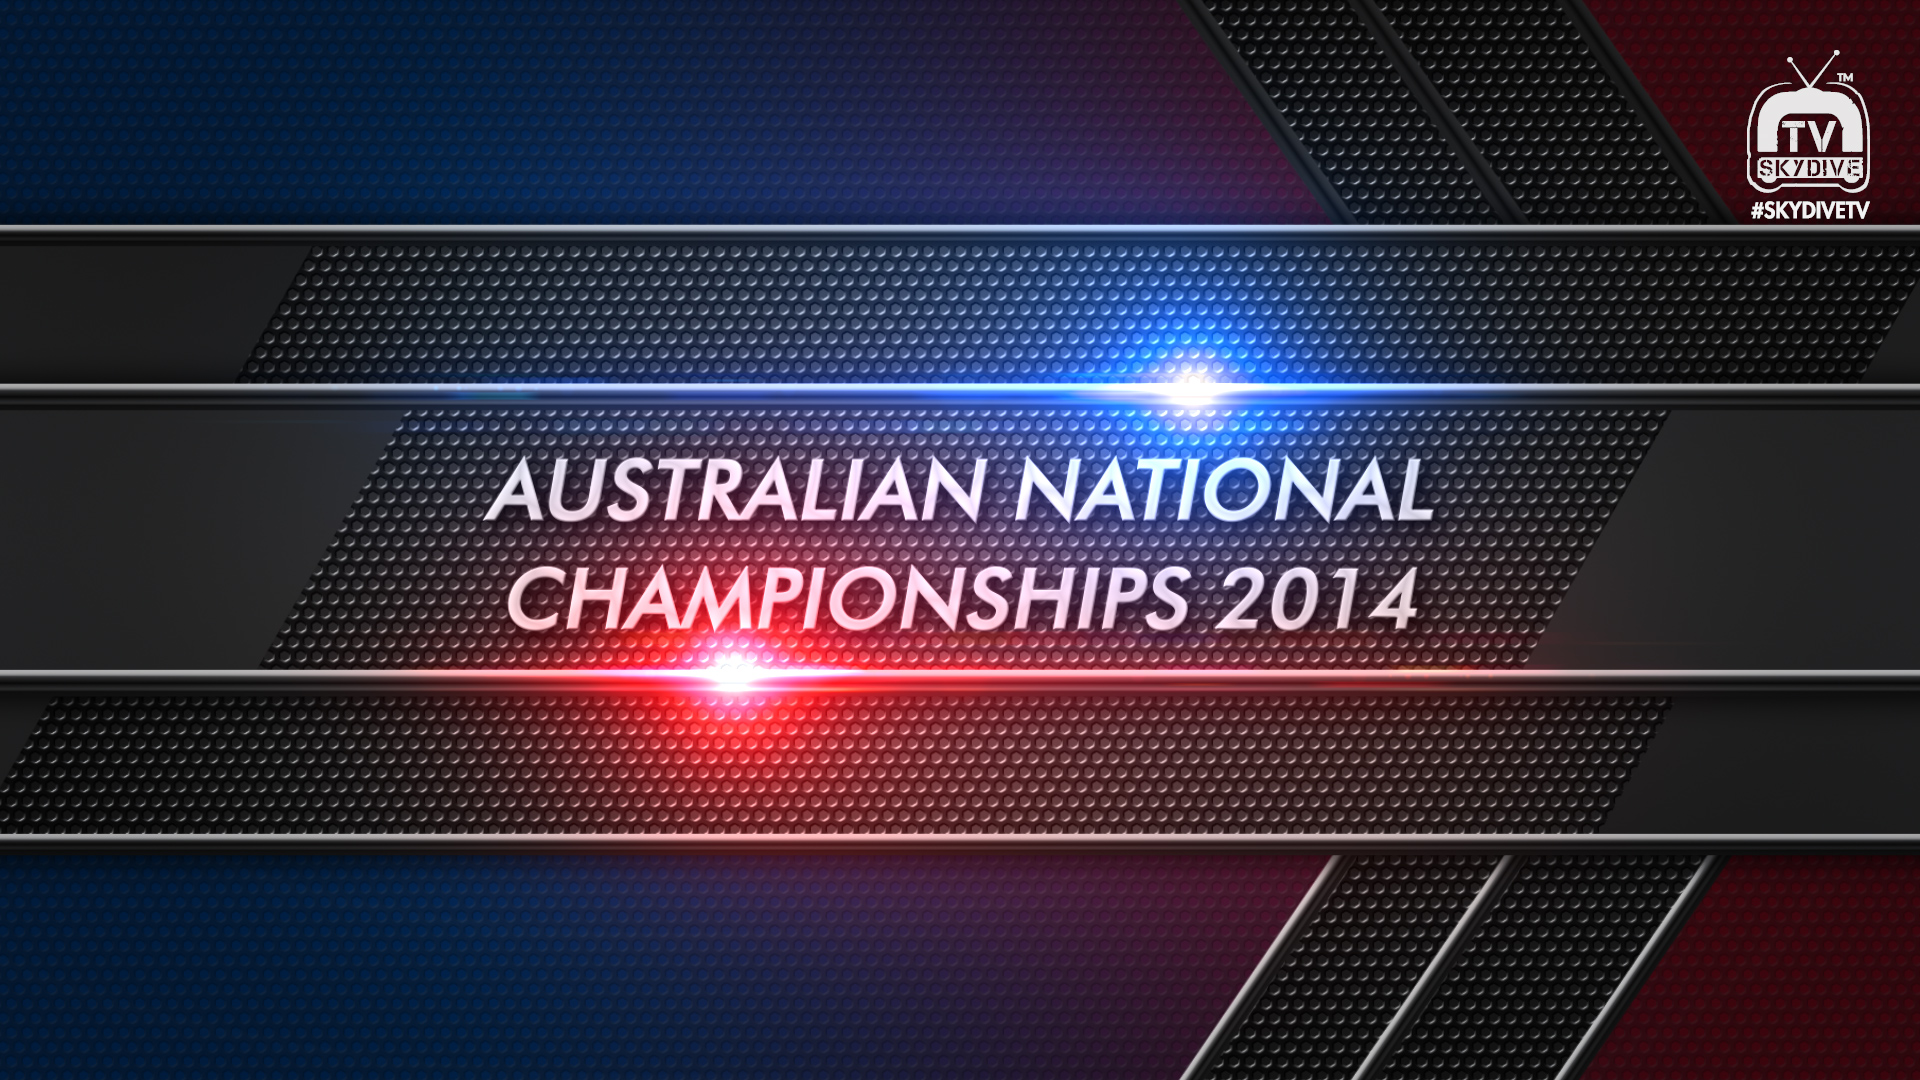 AustralianNationals